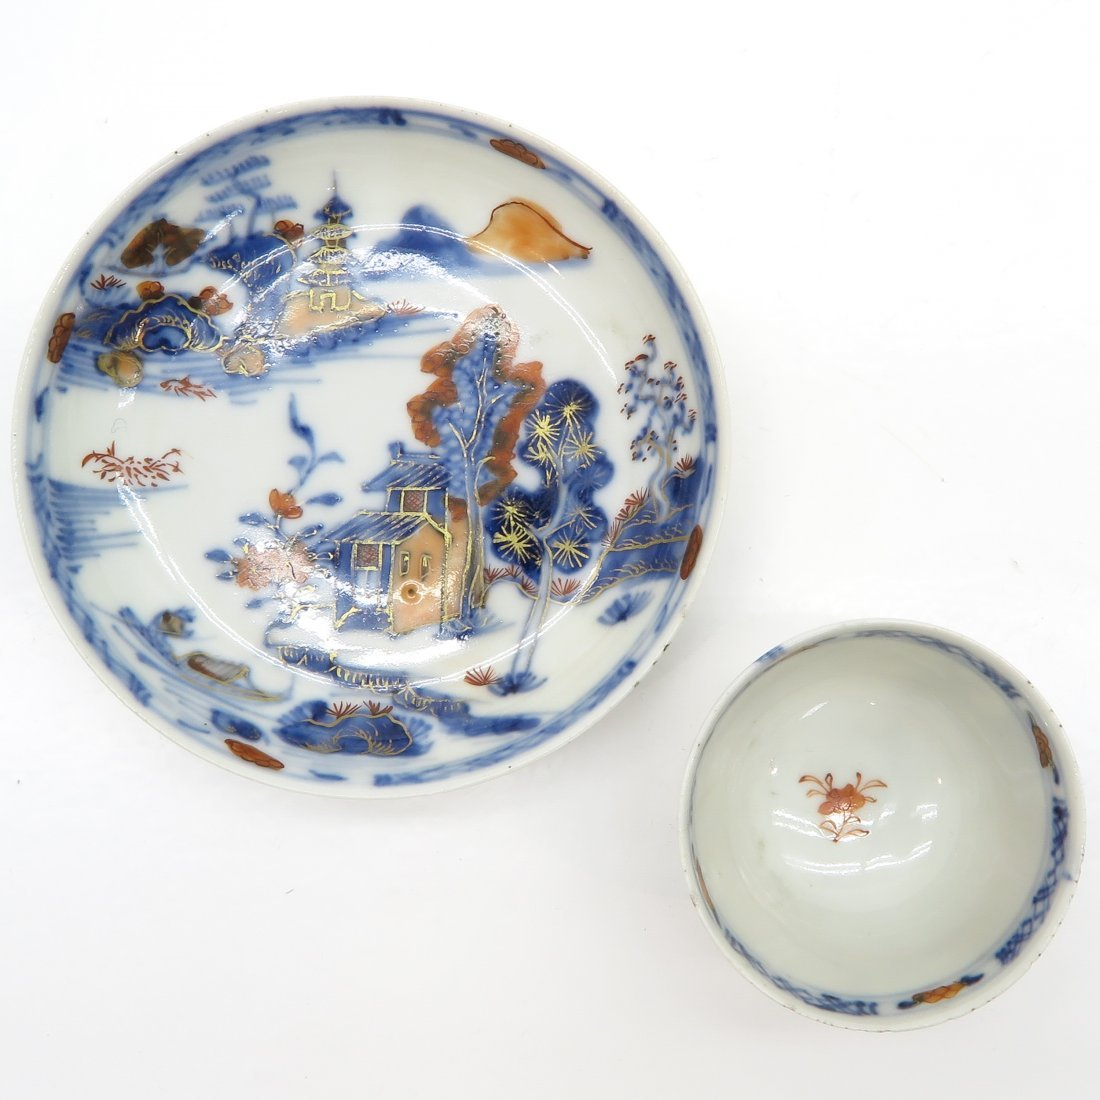 18th Century China Porcelain Cup and Saucer - 5